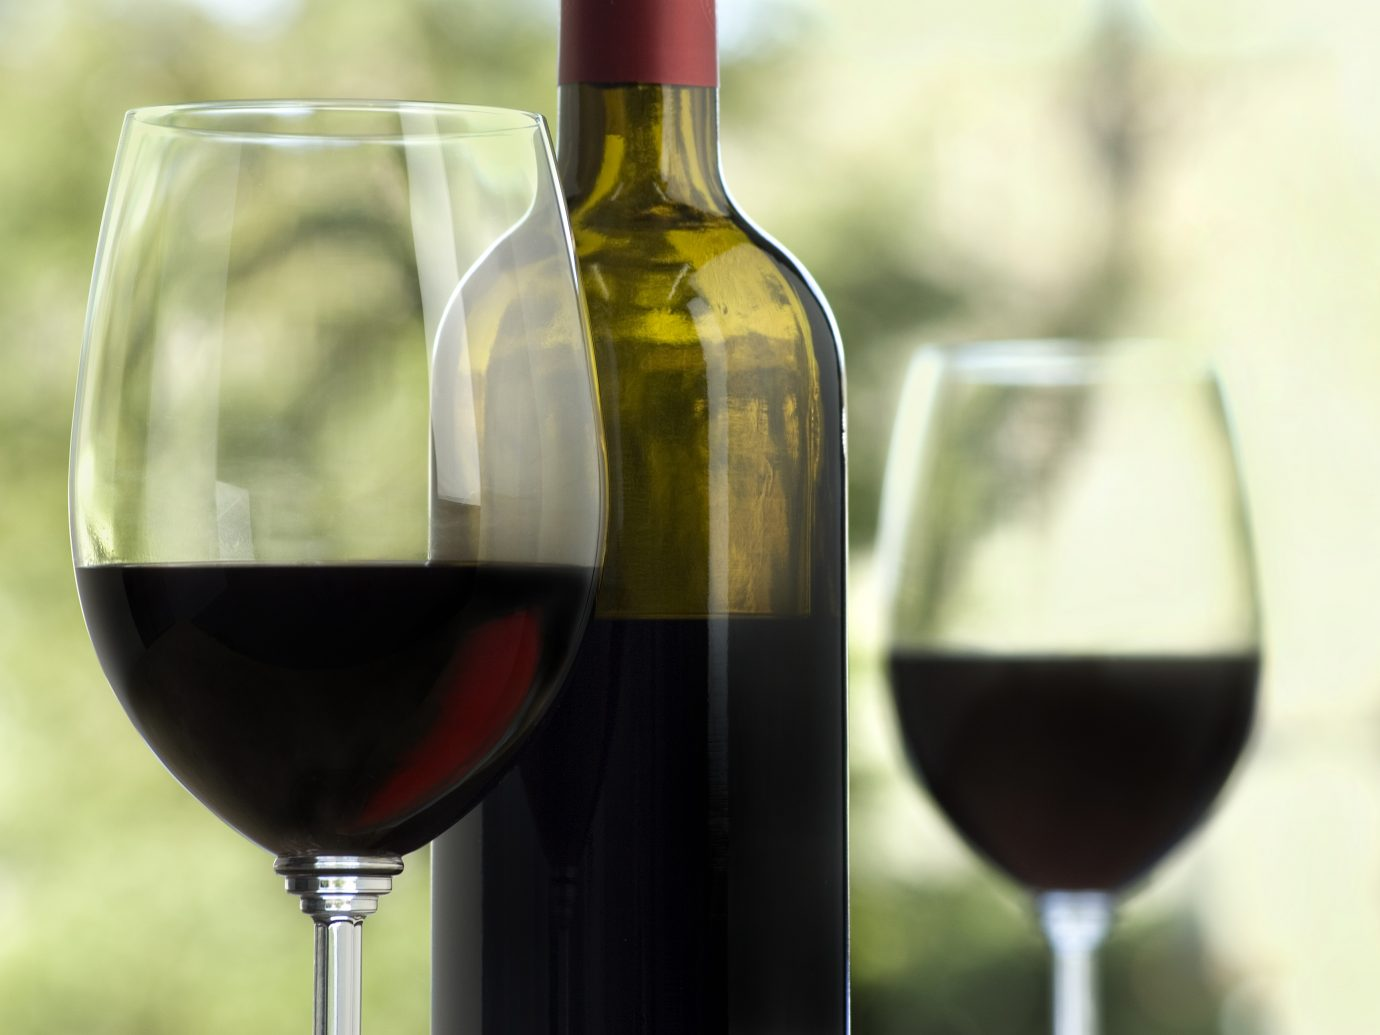 Wine glasses and a bottle containing Cabernet wine